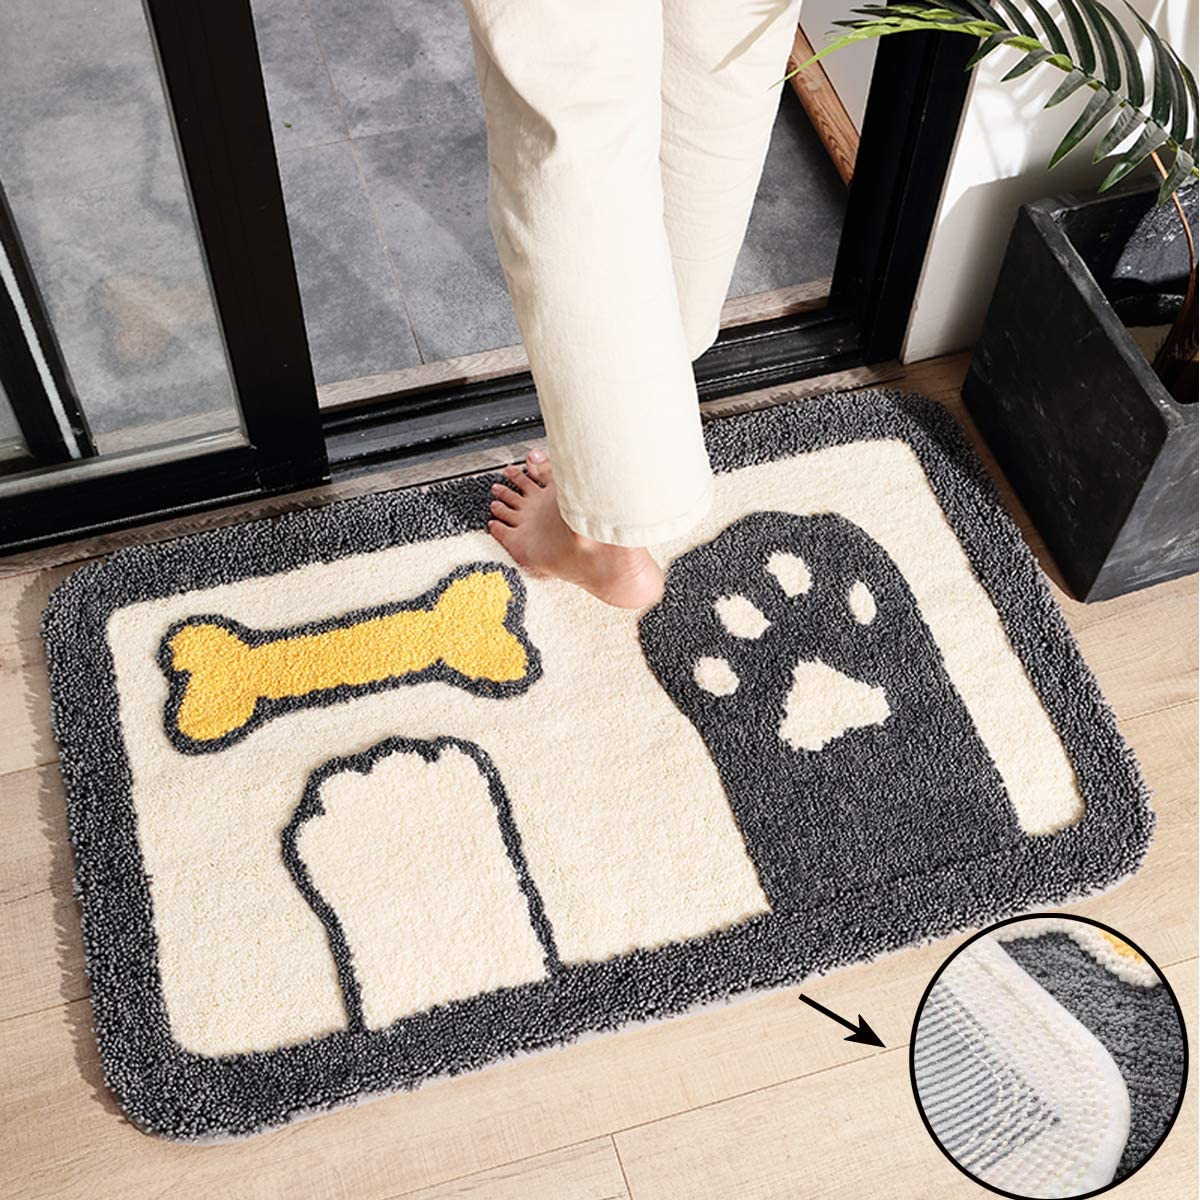 Indoor Doormat, Anti-Slip Quickly Absorb Moisture and Mud Rugs Cute Paws Ultra-Soft No Odor Door Mats for Home Entrance Doorway Entryway Bedroom Bathroom Kitchen,Machine Washable,32×20 Inch